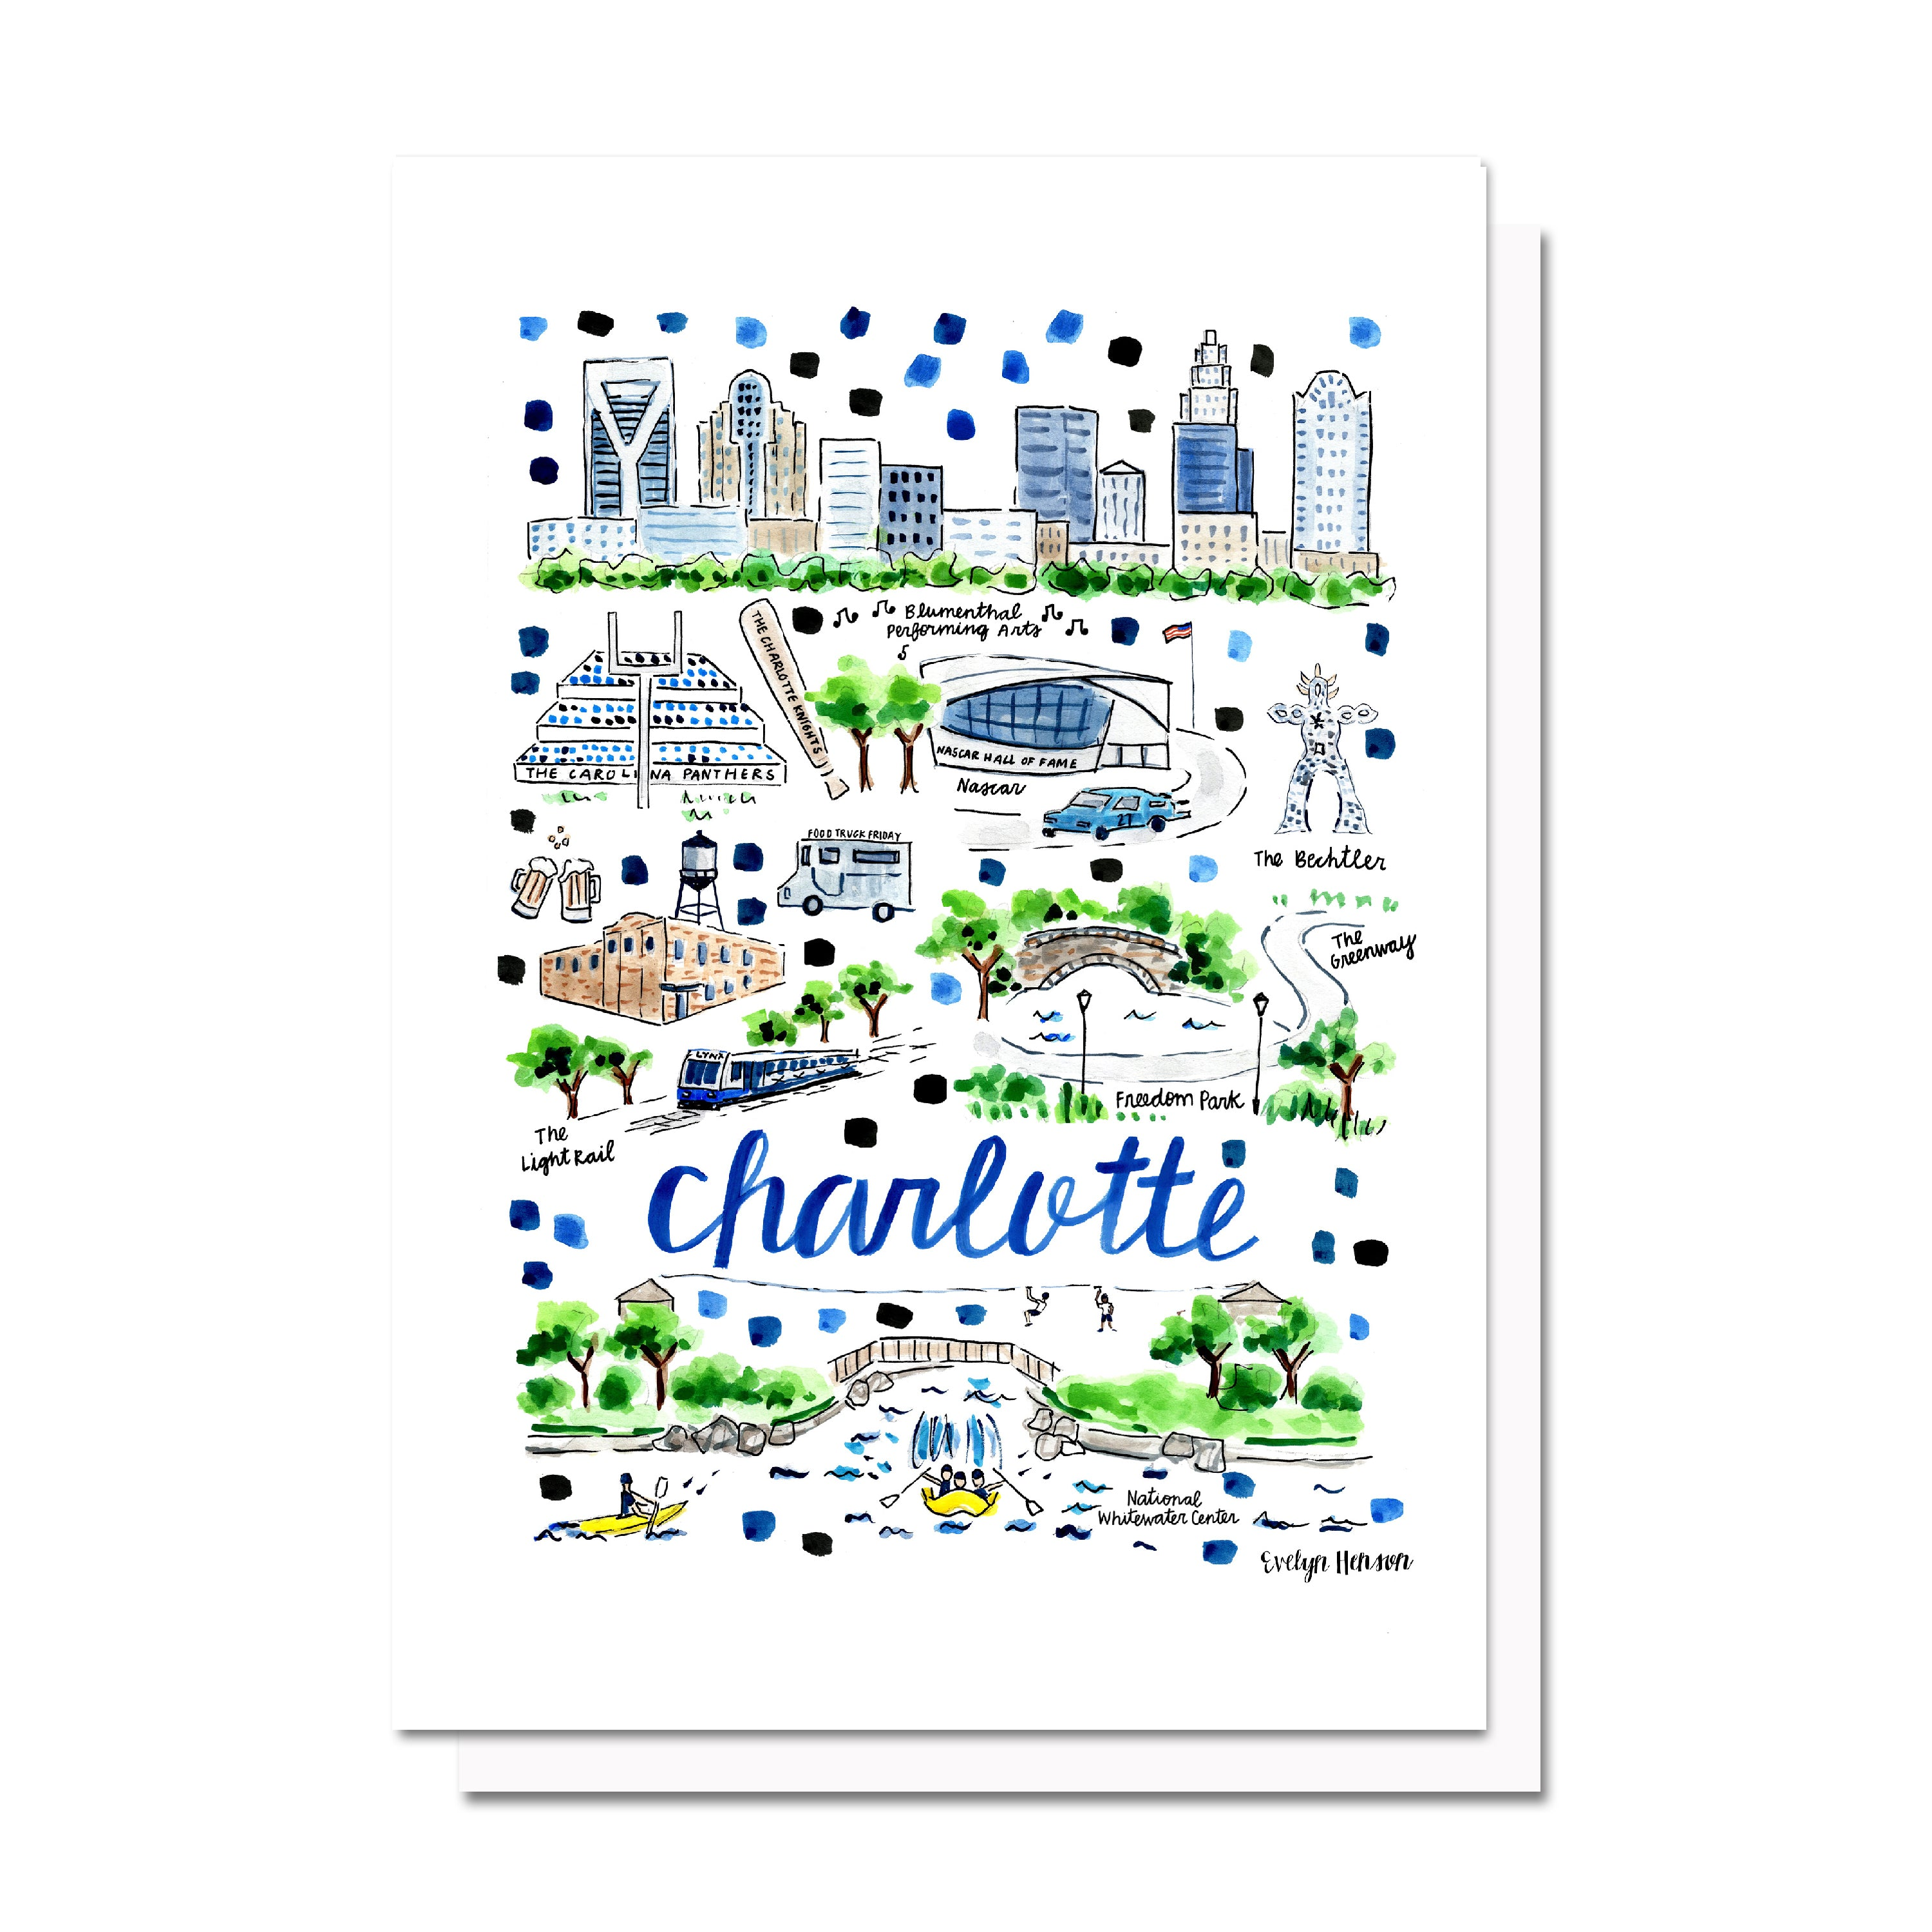 Charlotte, NC Map Card – Evelyn Henson on